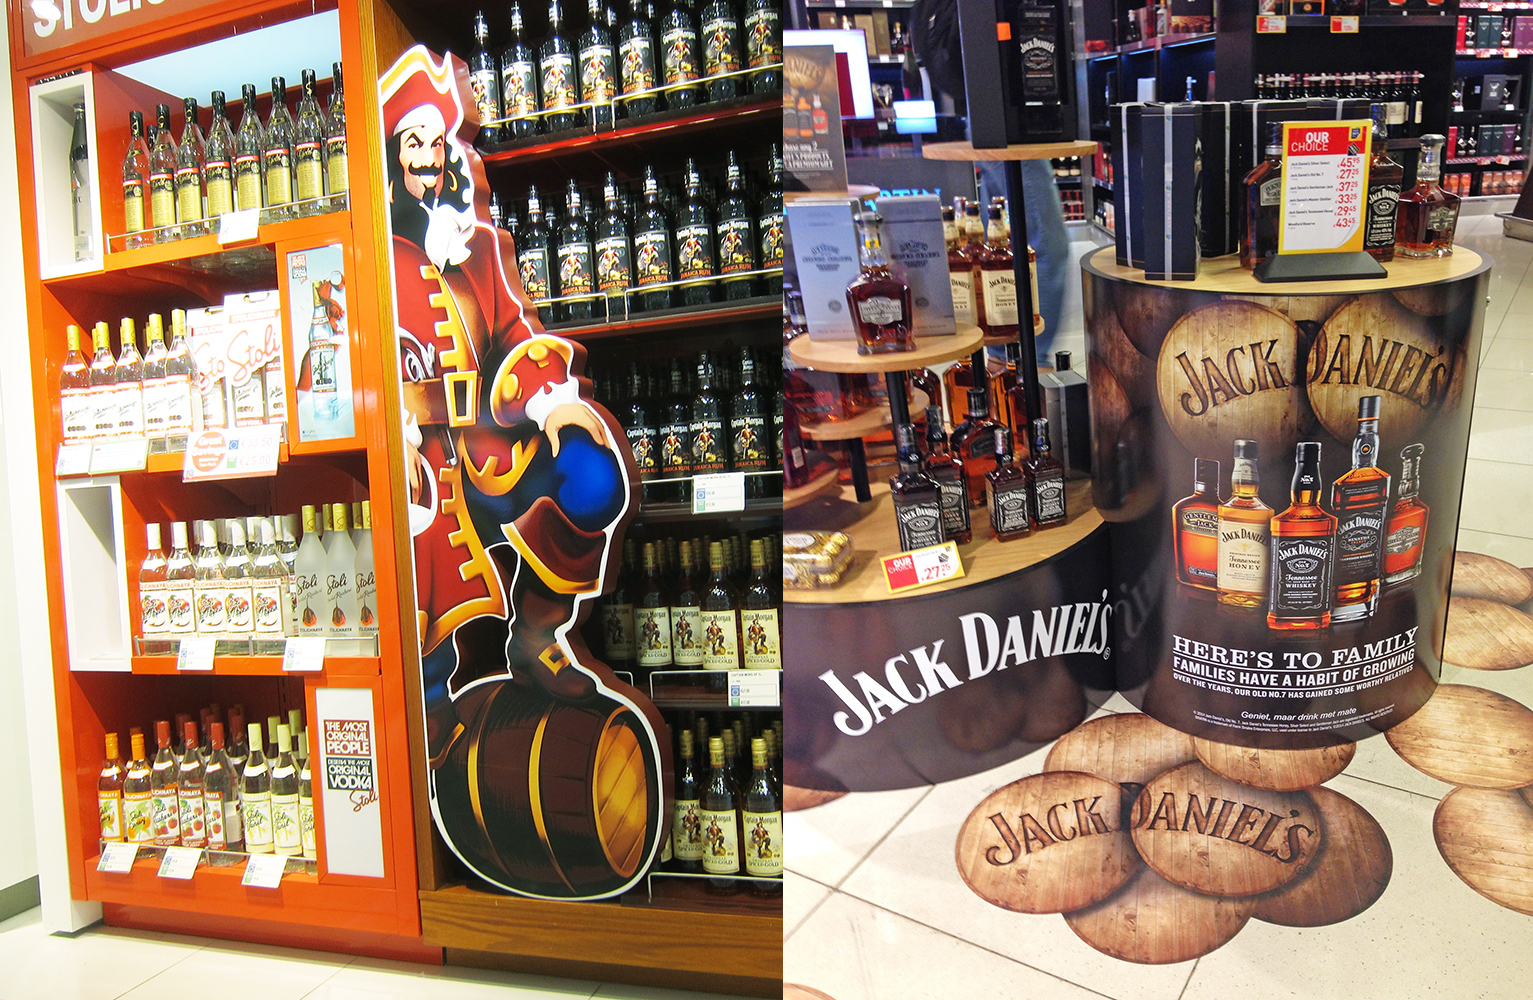 Captain Morgan Spiced Rum and Jack Daniel's displays